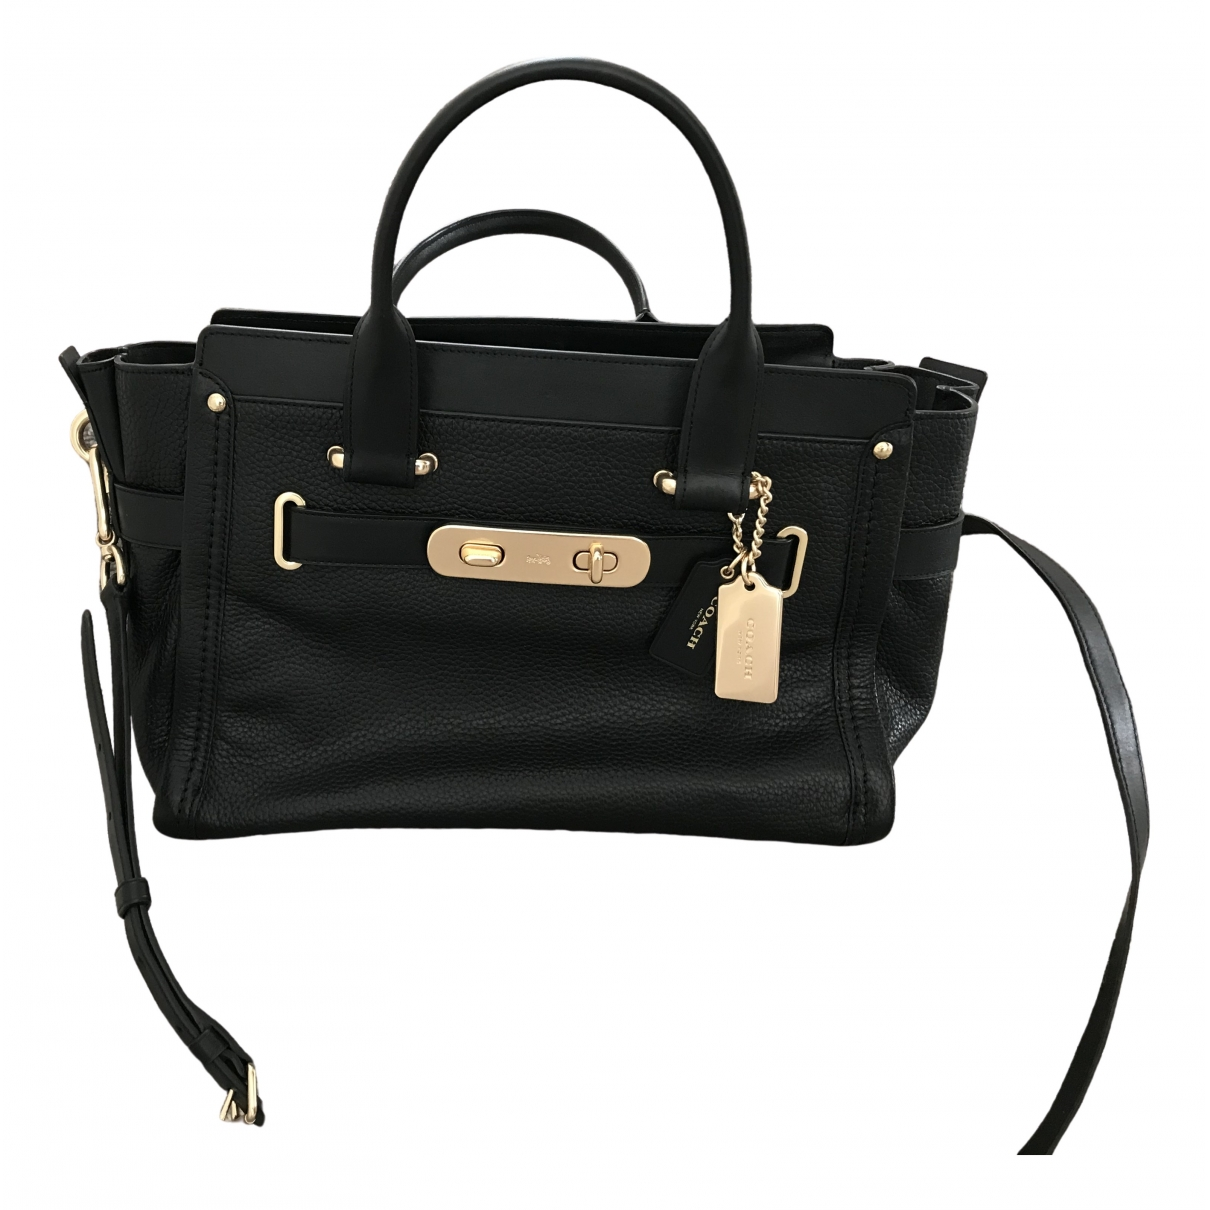 Coach \N Black Leather handbag for Women \N